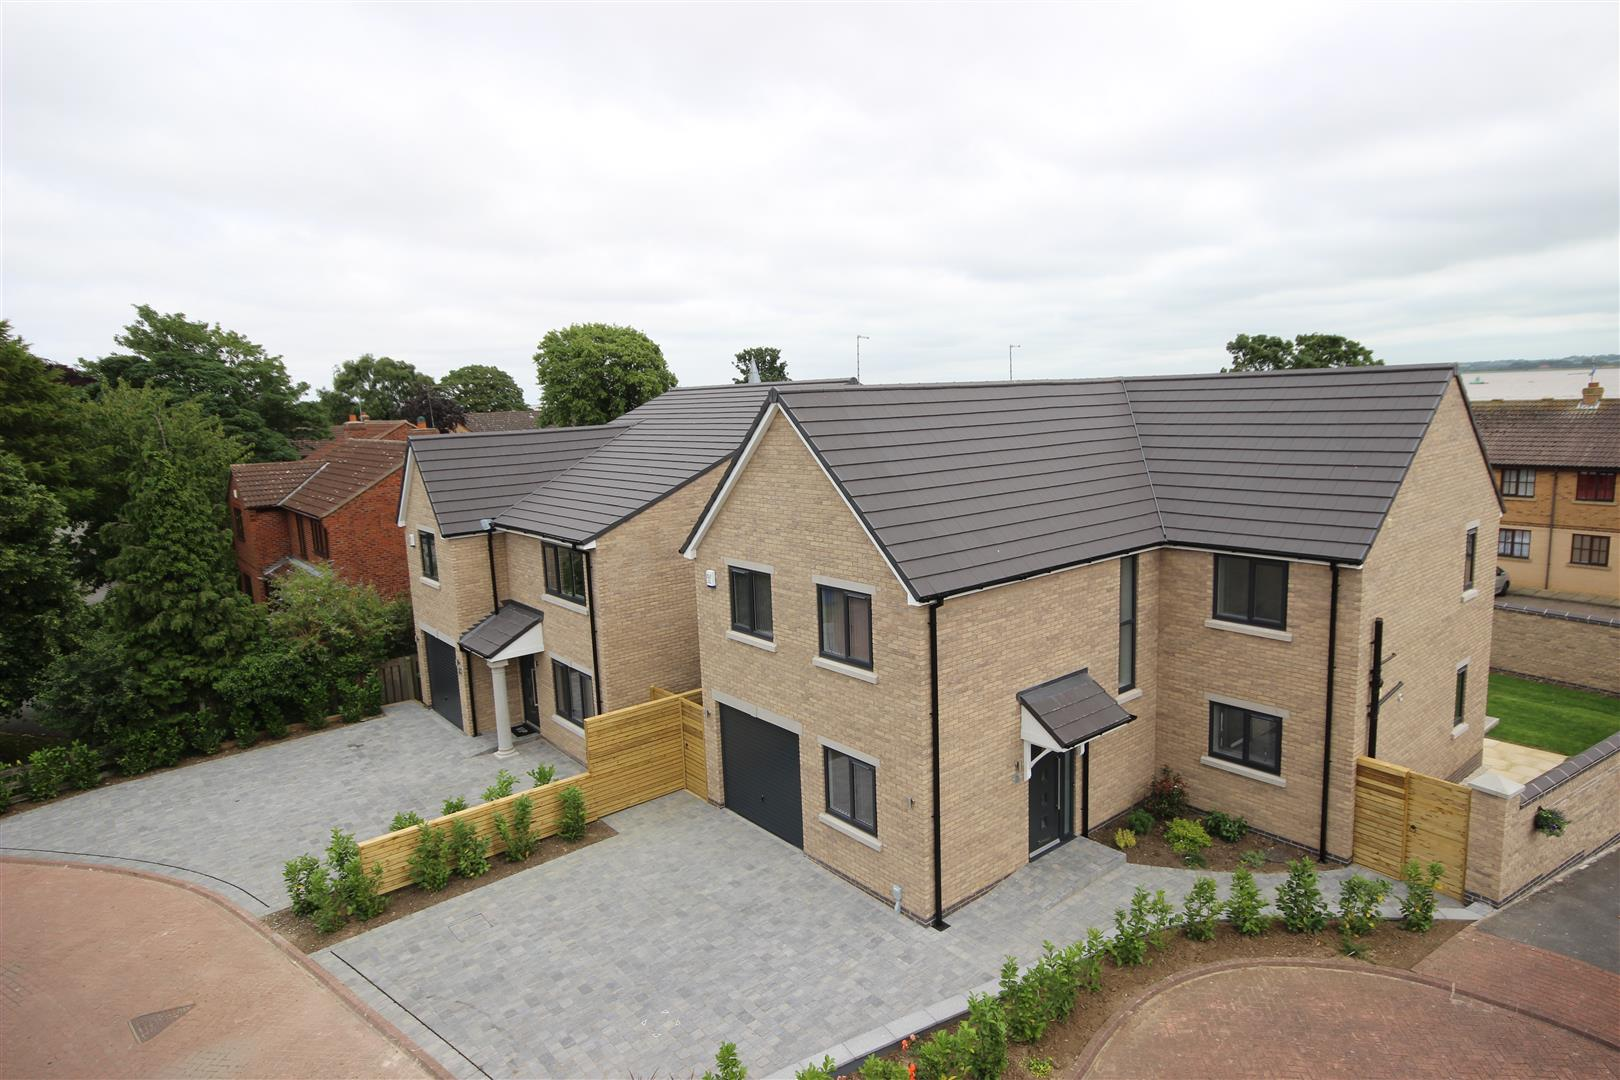 Plot 2 Belmont Park, The Coachings, Hessle, Plot 2, HU13 0HD